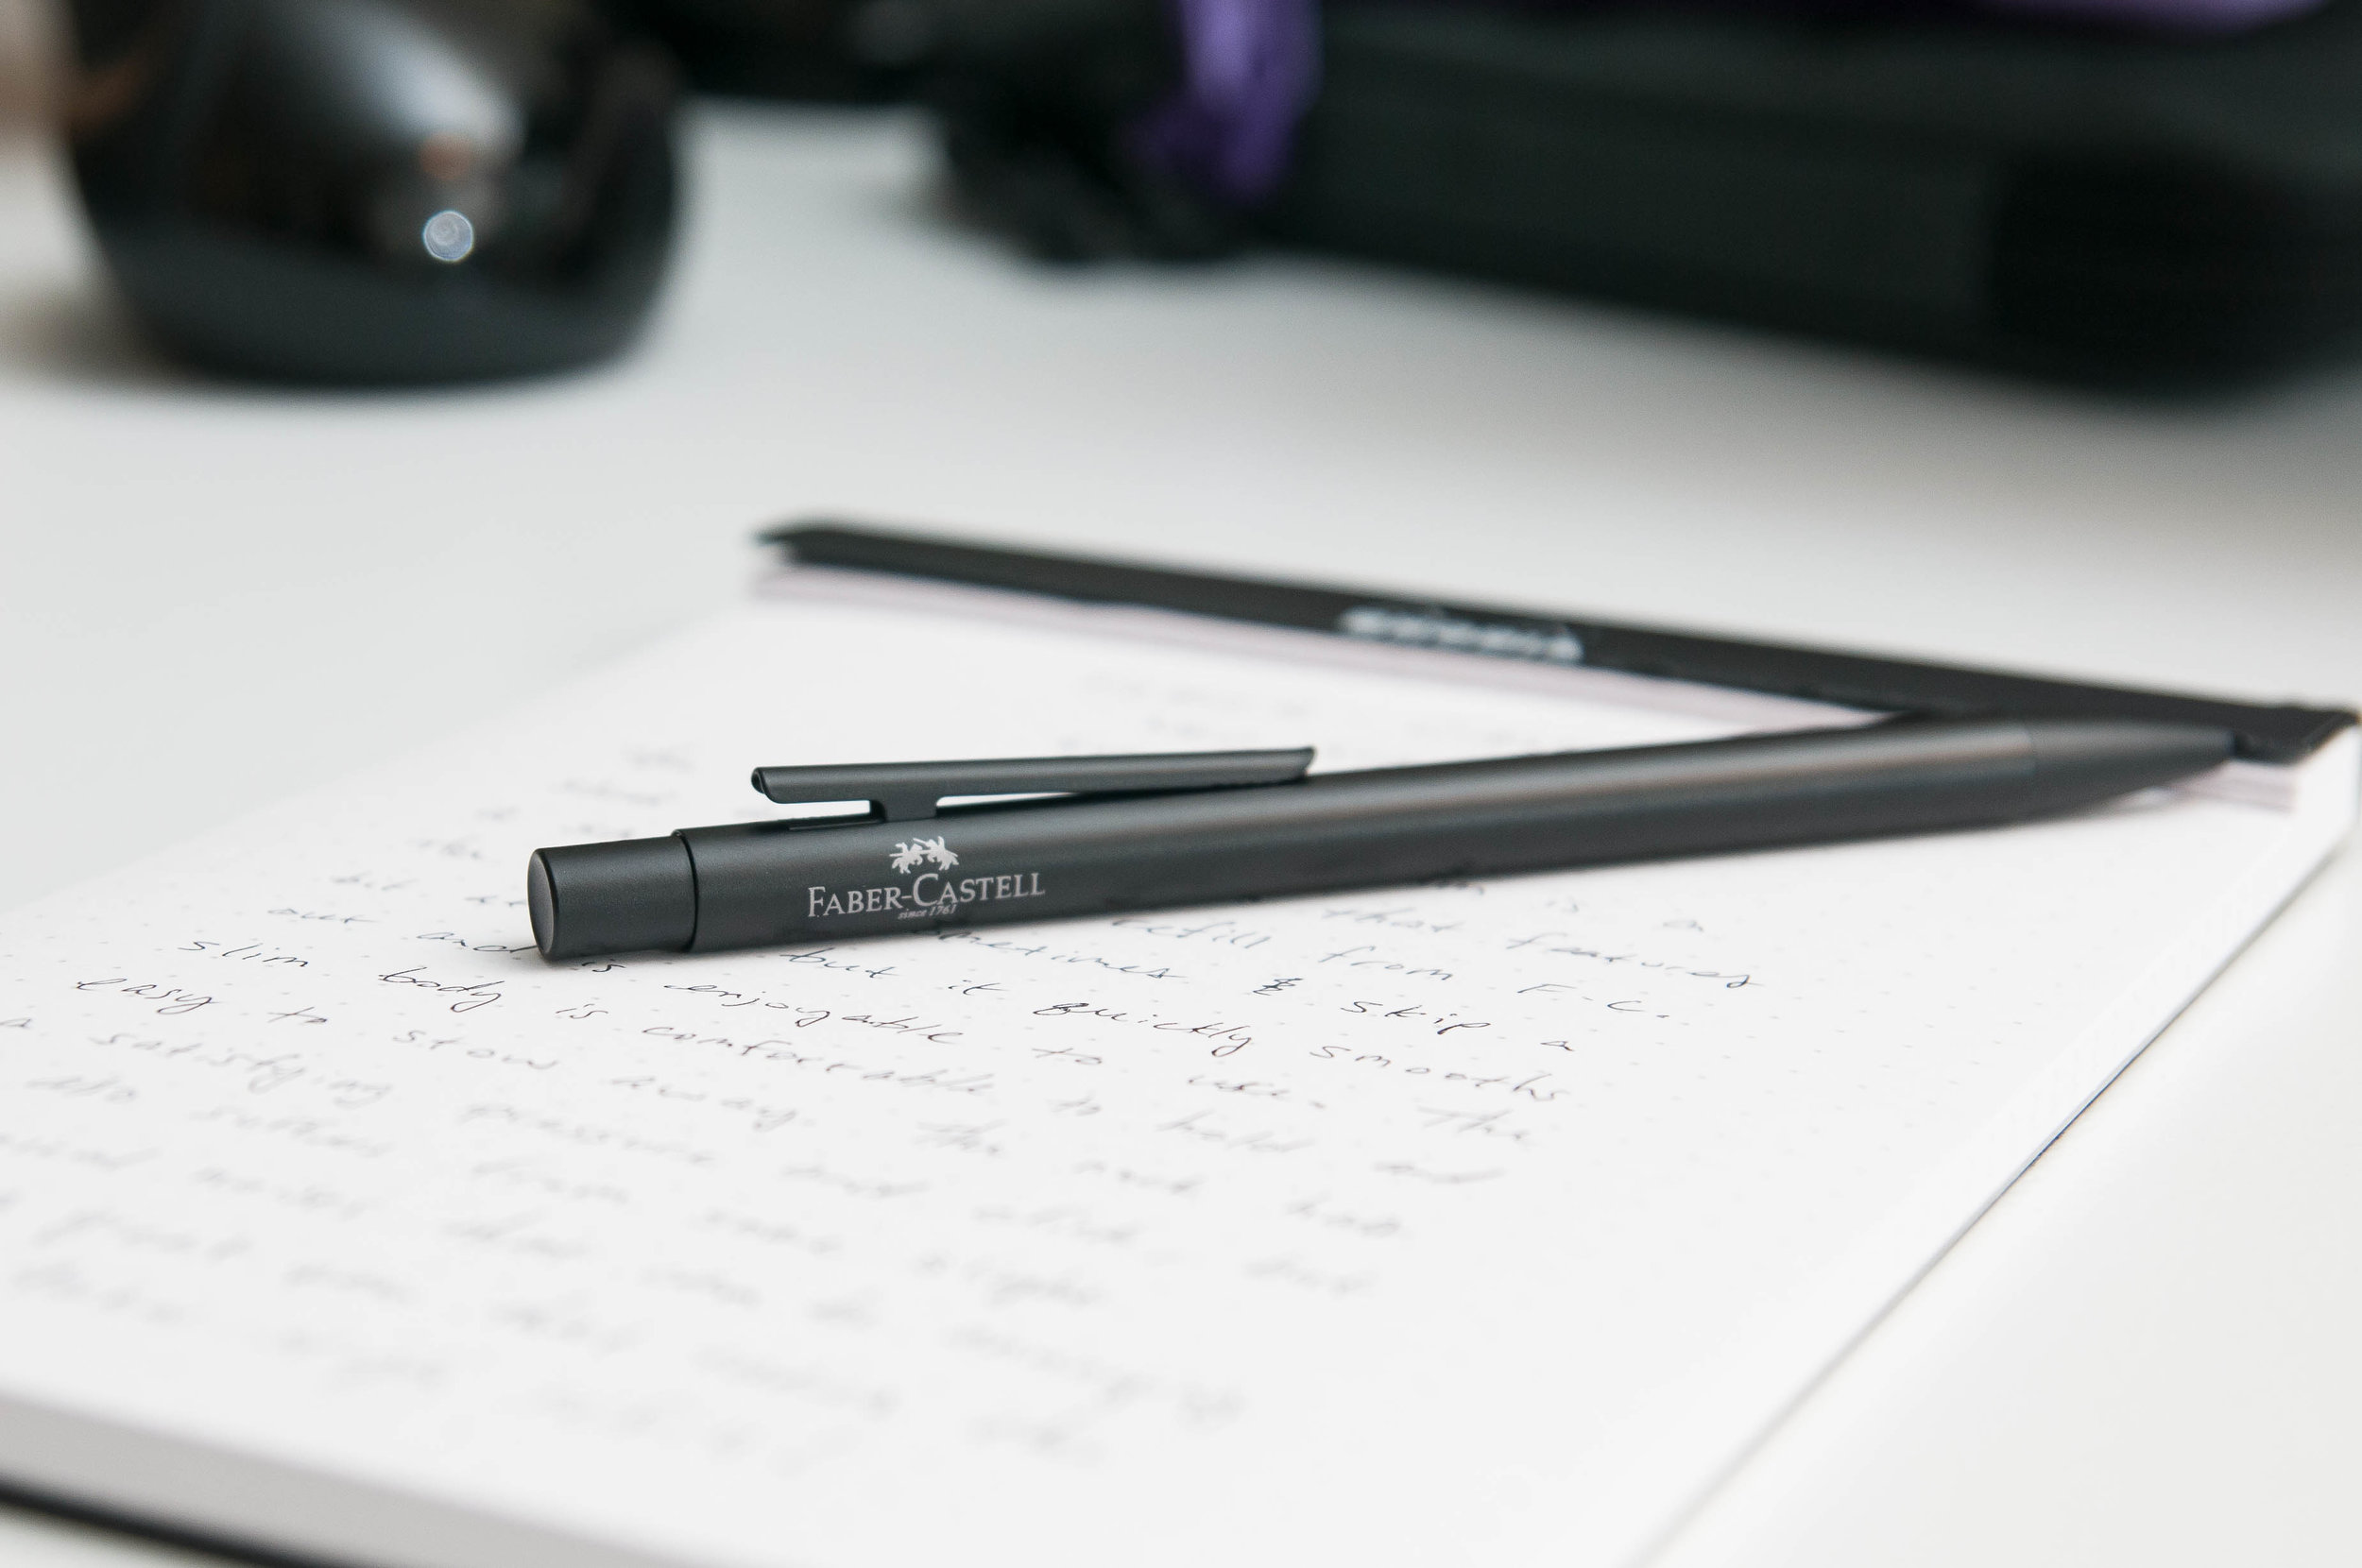 Faber-Castell NEO Slim Rollerball Pen Review